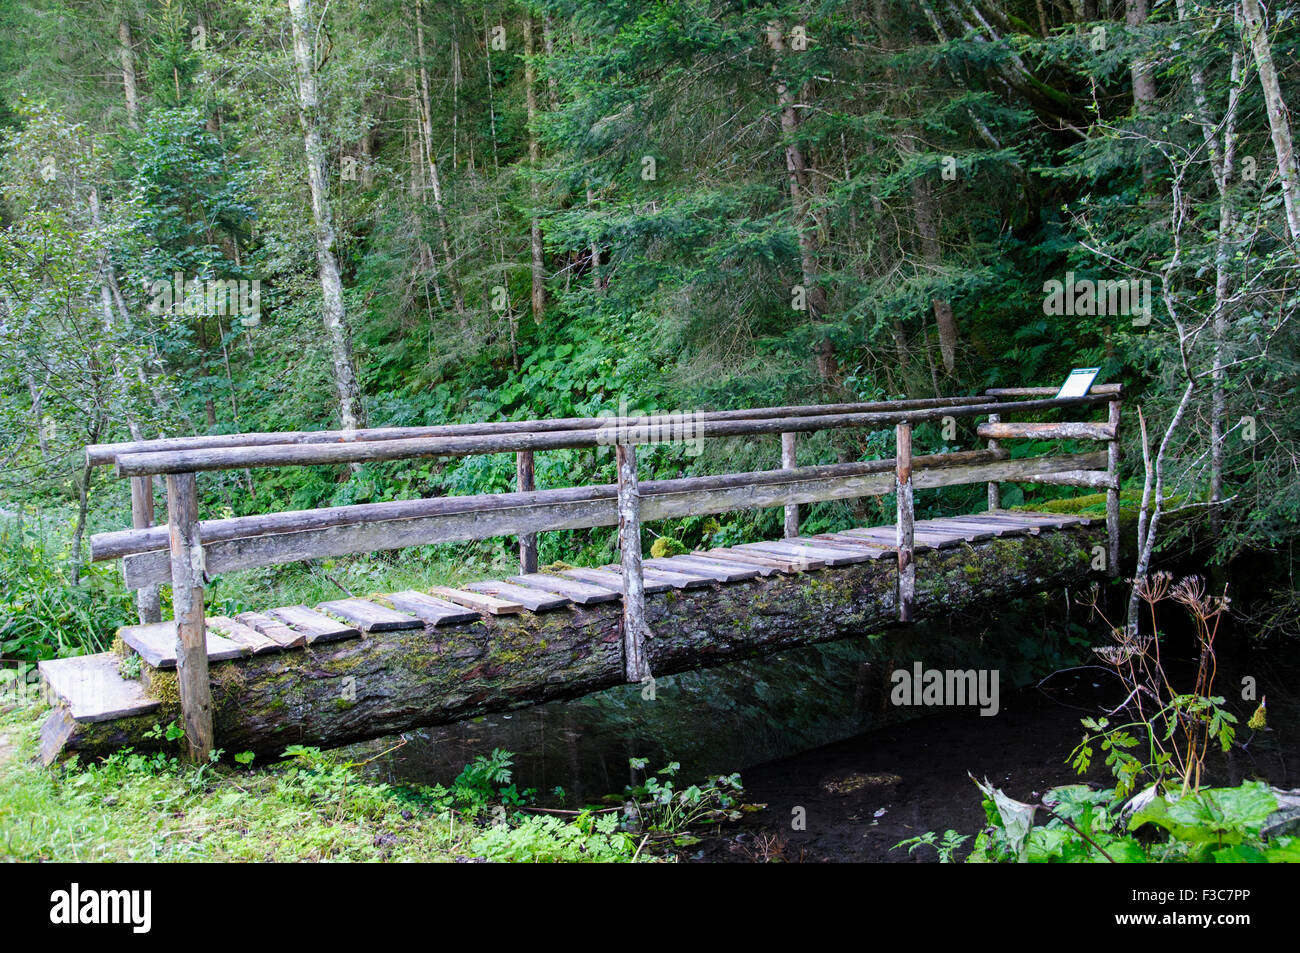 wooden bridge in a lush forest. Photographed in Tirol Austria. - Stock Image